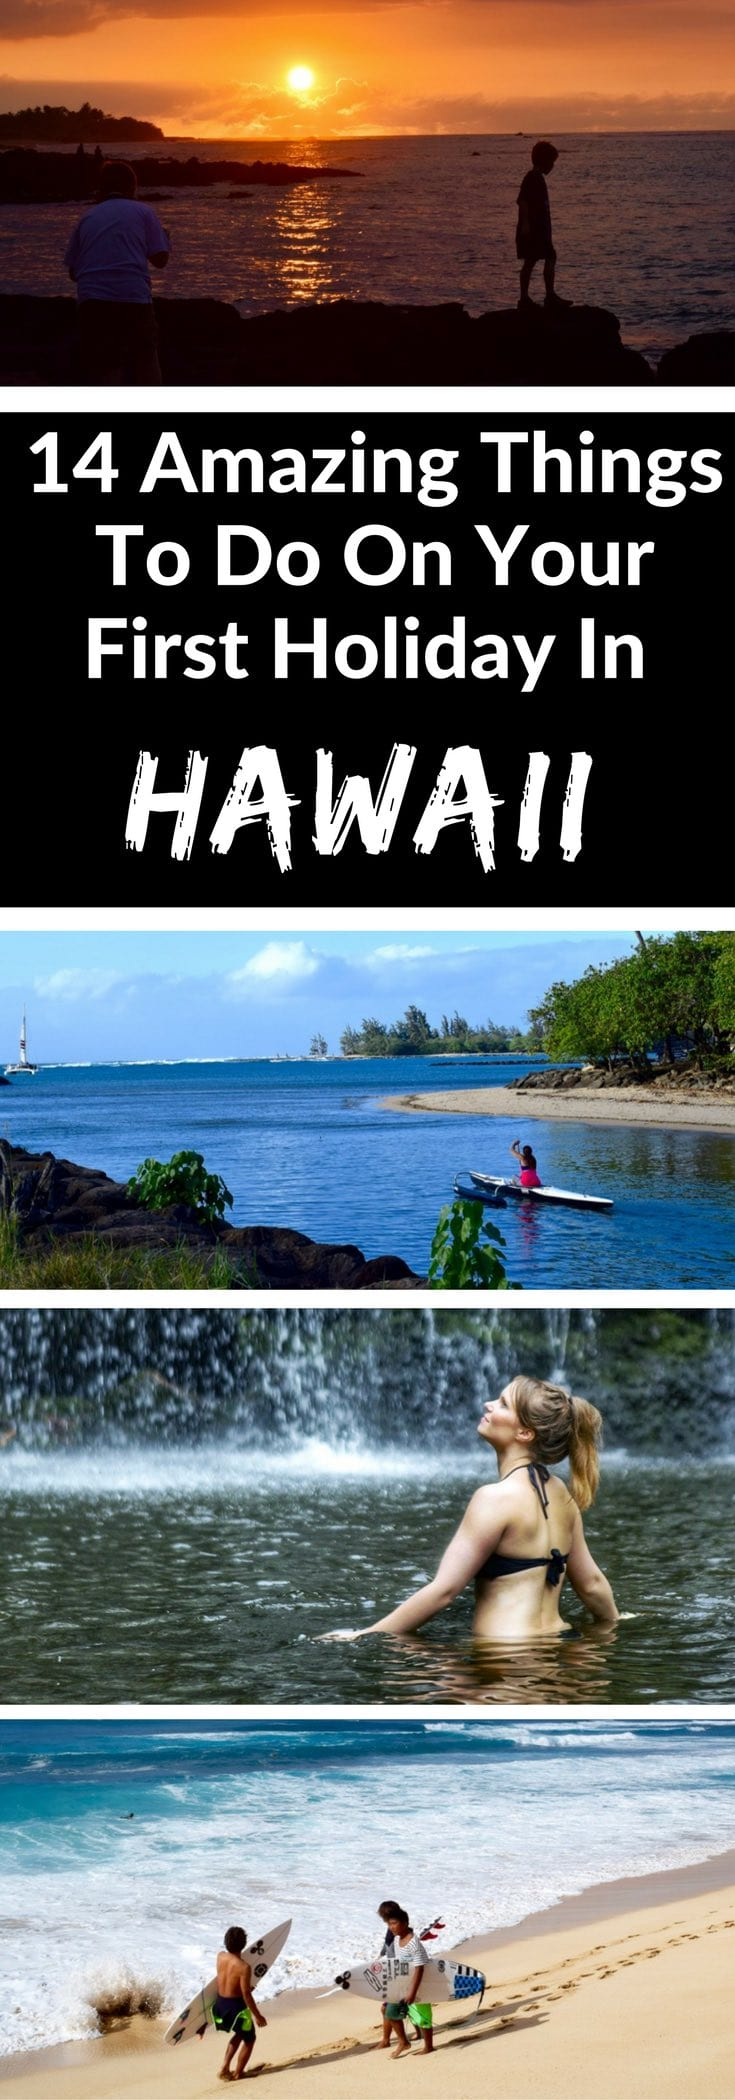 14 Amazing Things To Do On Your First Holiday In Hawaii